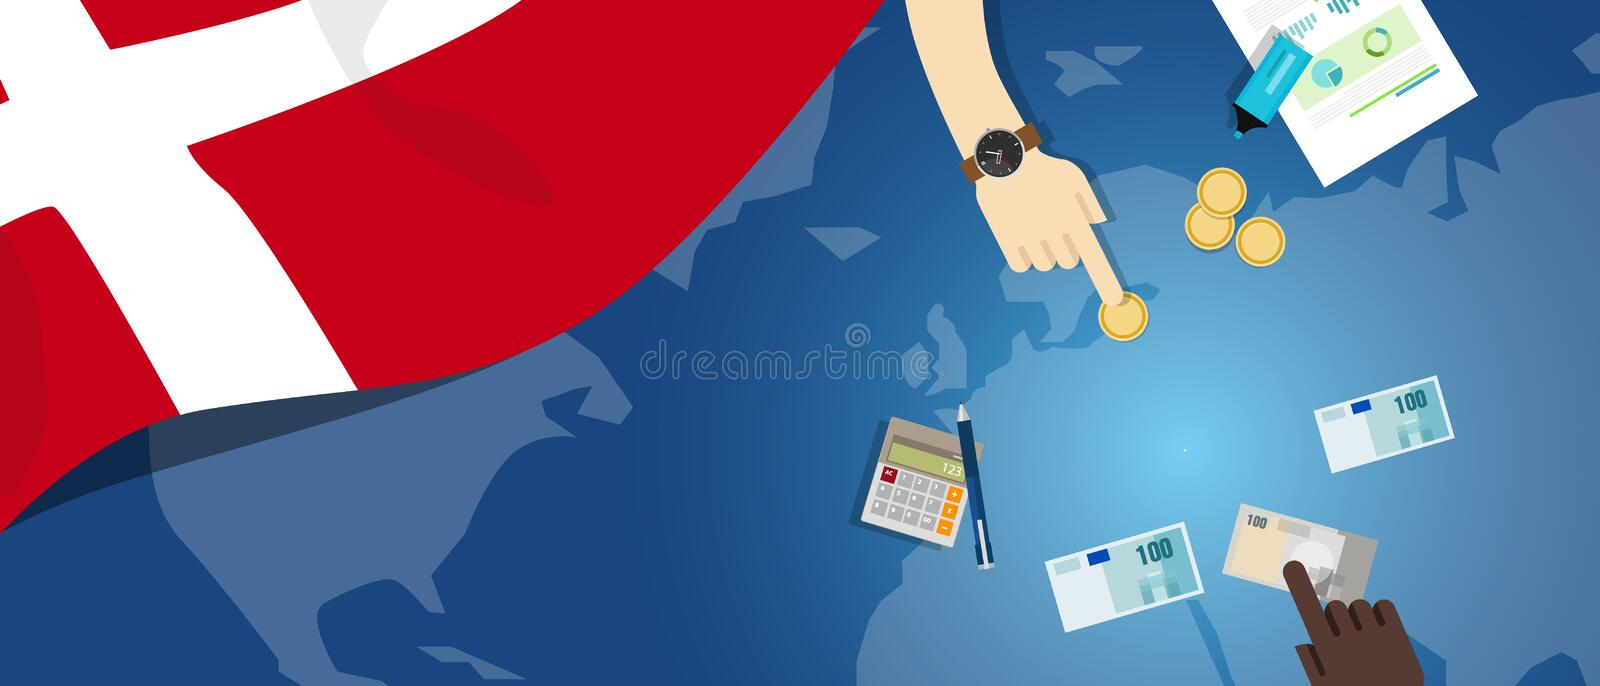 Denmark economy fiscal money trade concept illustration of financial banking budget with flag map and currency. Vector royalty free illustration